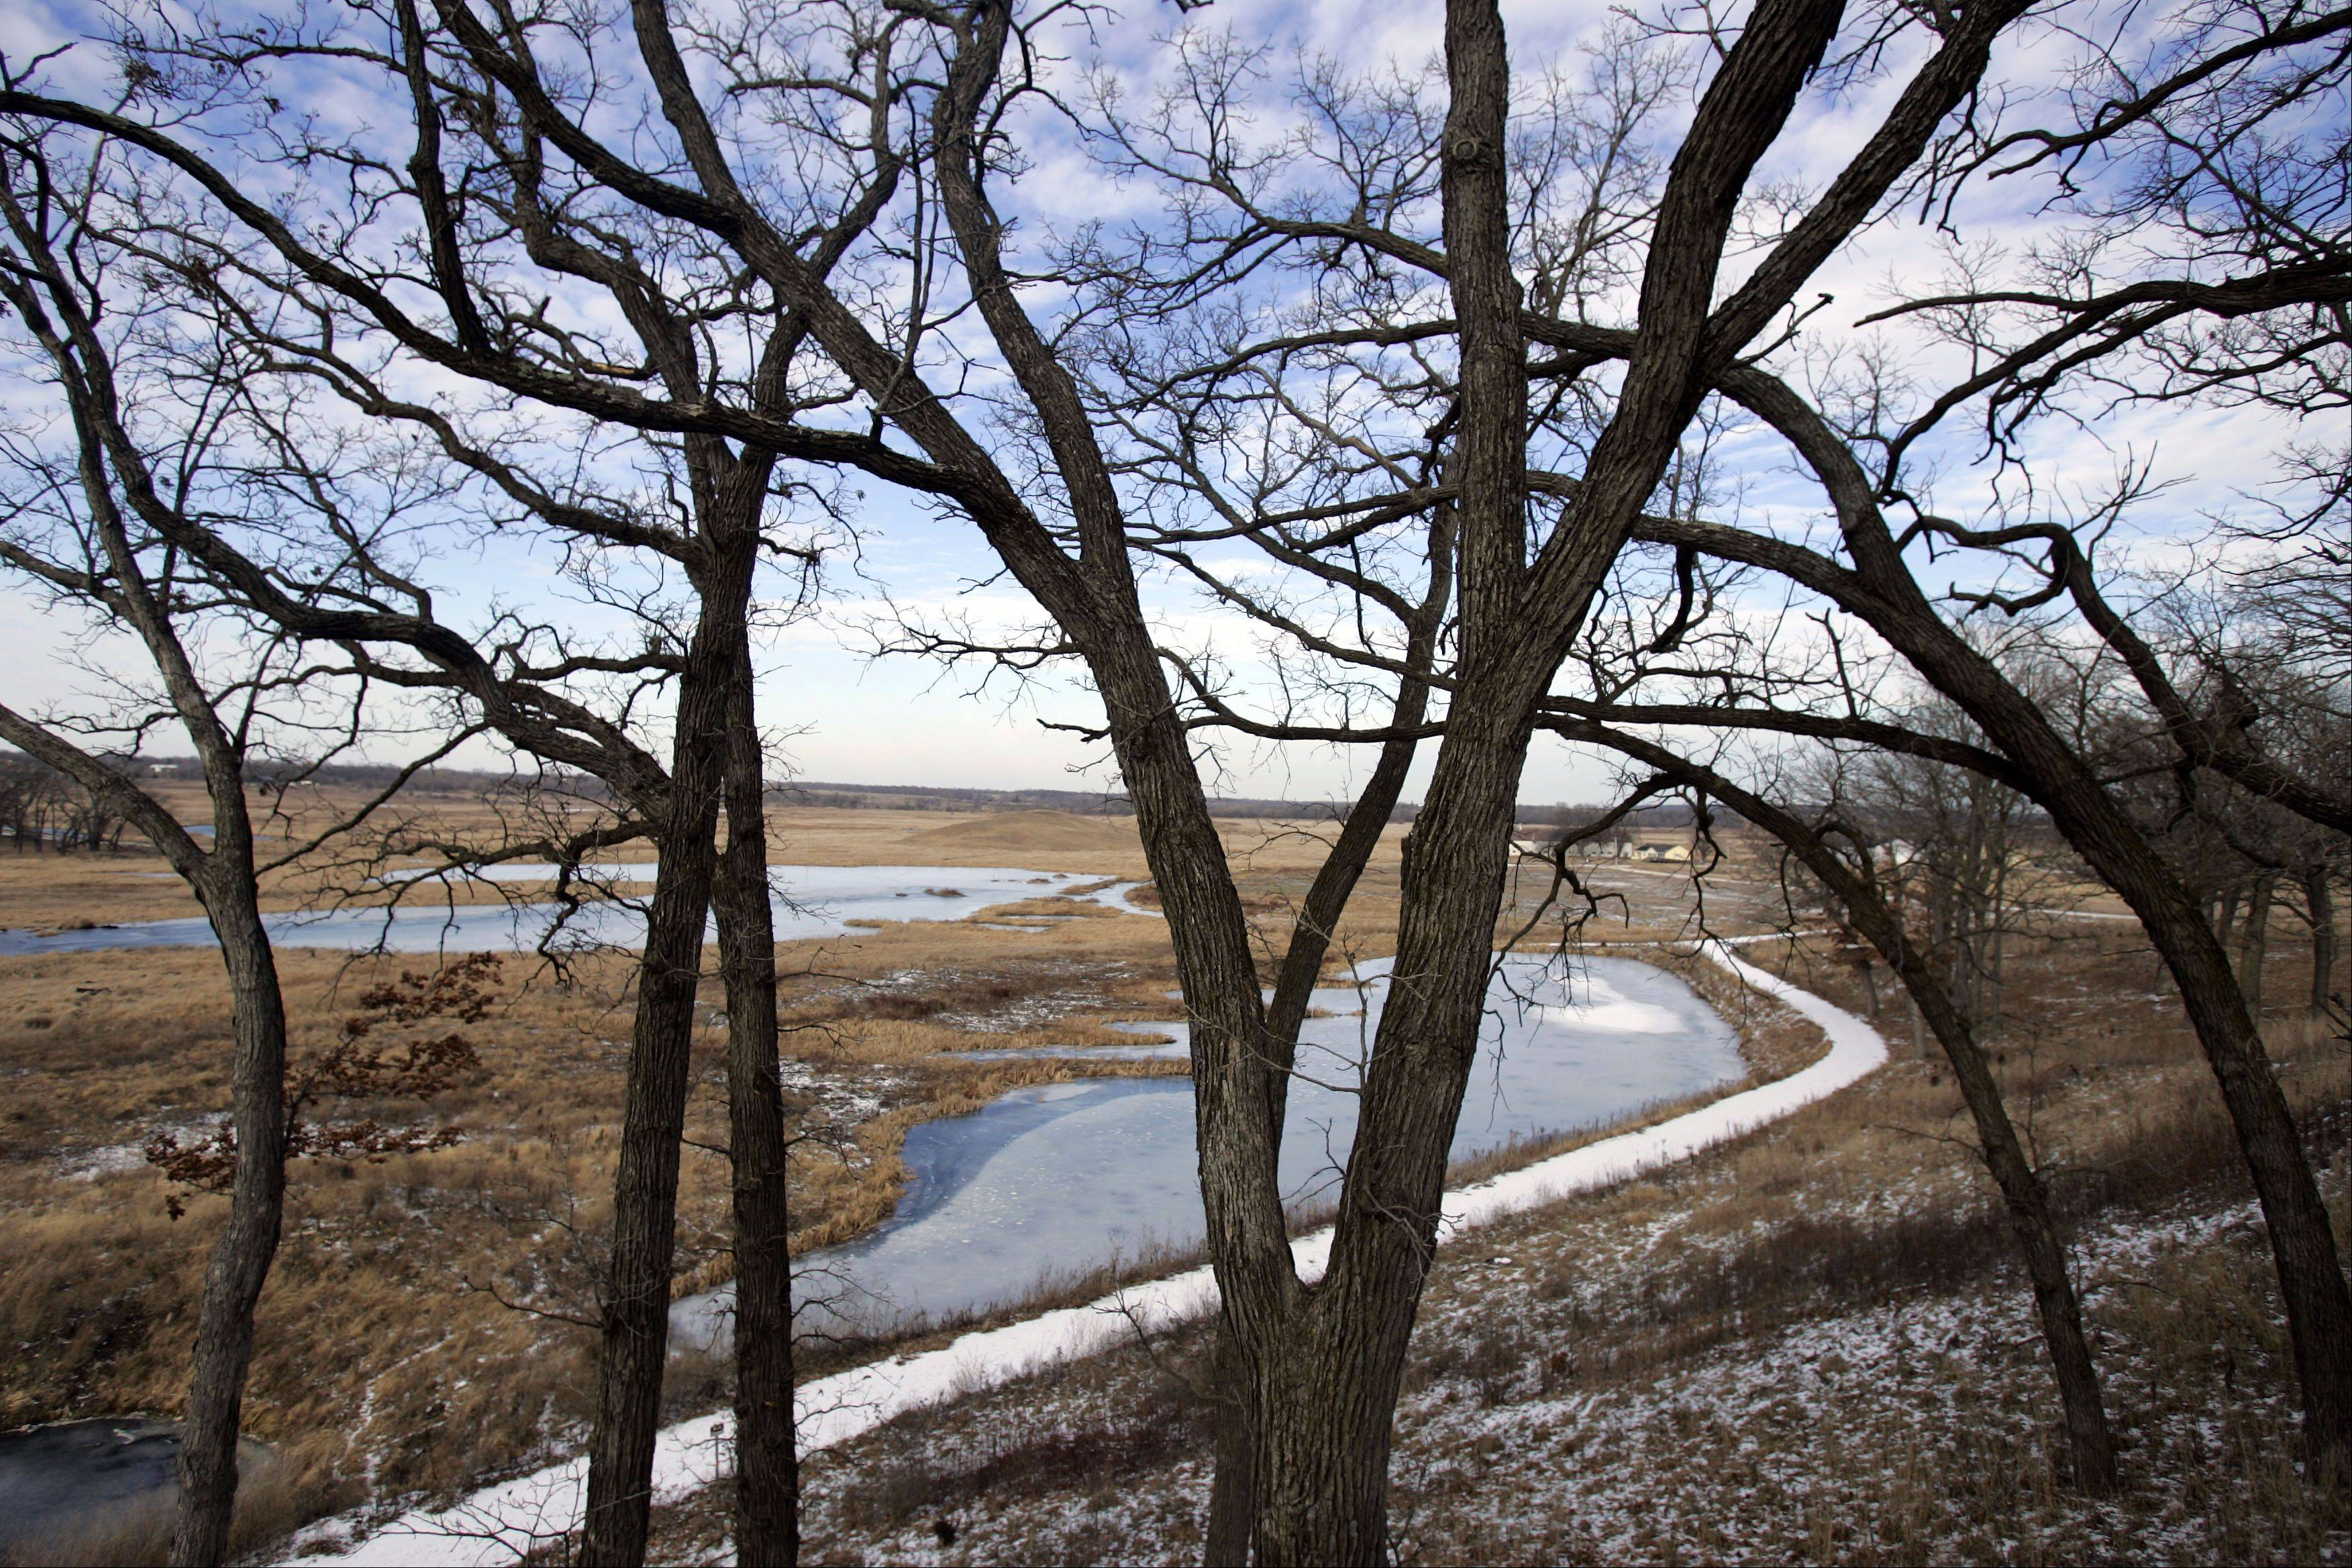 The new Hackmatack National Wildlife Refuge, spanning the border of McHenry County and Wisconsin, began as a dream of local conservationists nearly a decade ago.